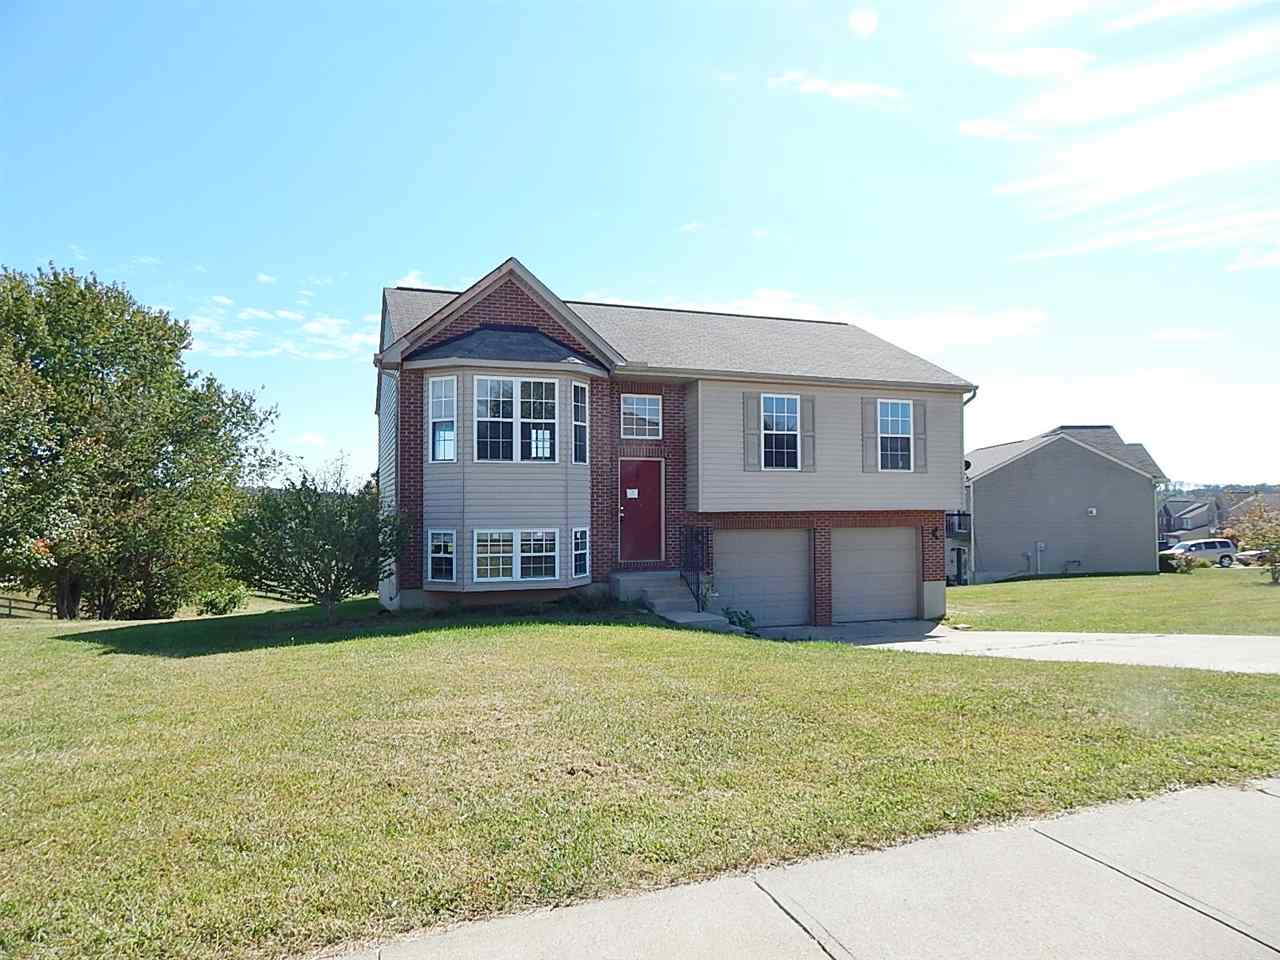 Photo 1 for 1289 Cynthiana Ct Independence, KY 41051